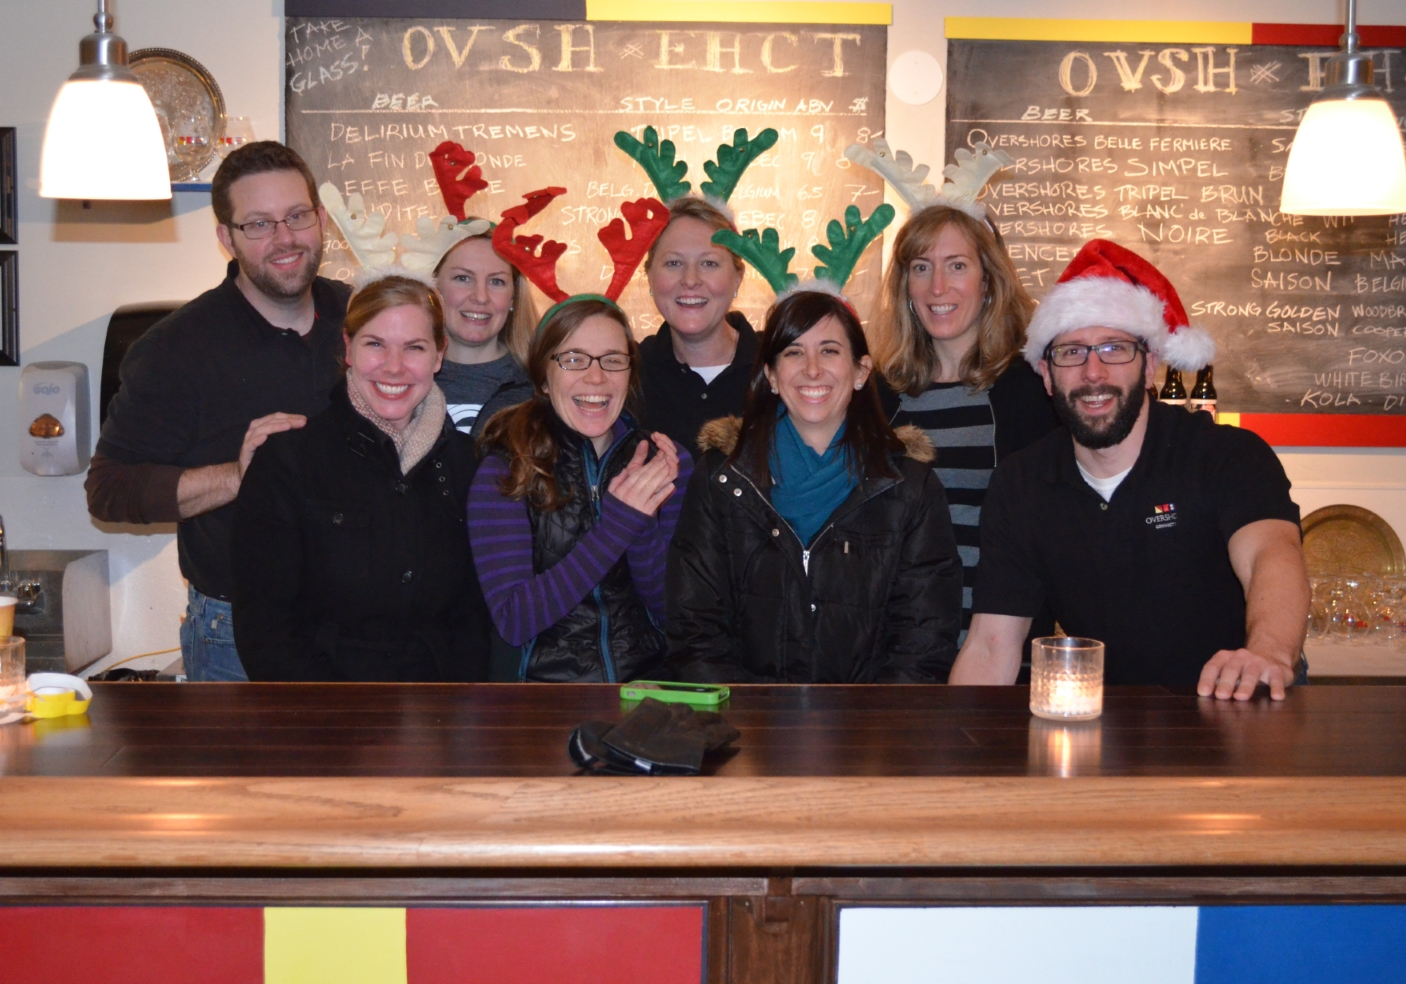 The Overshores Brewing Co. team.